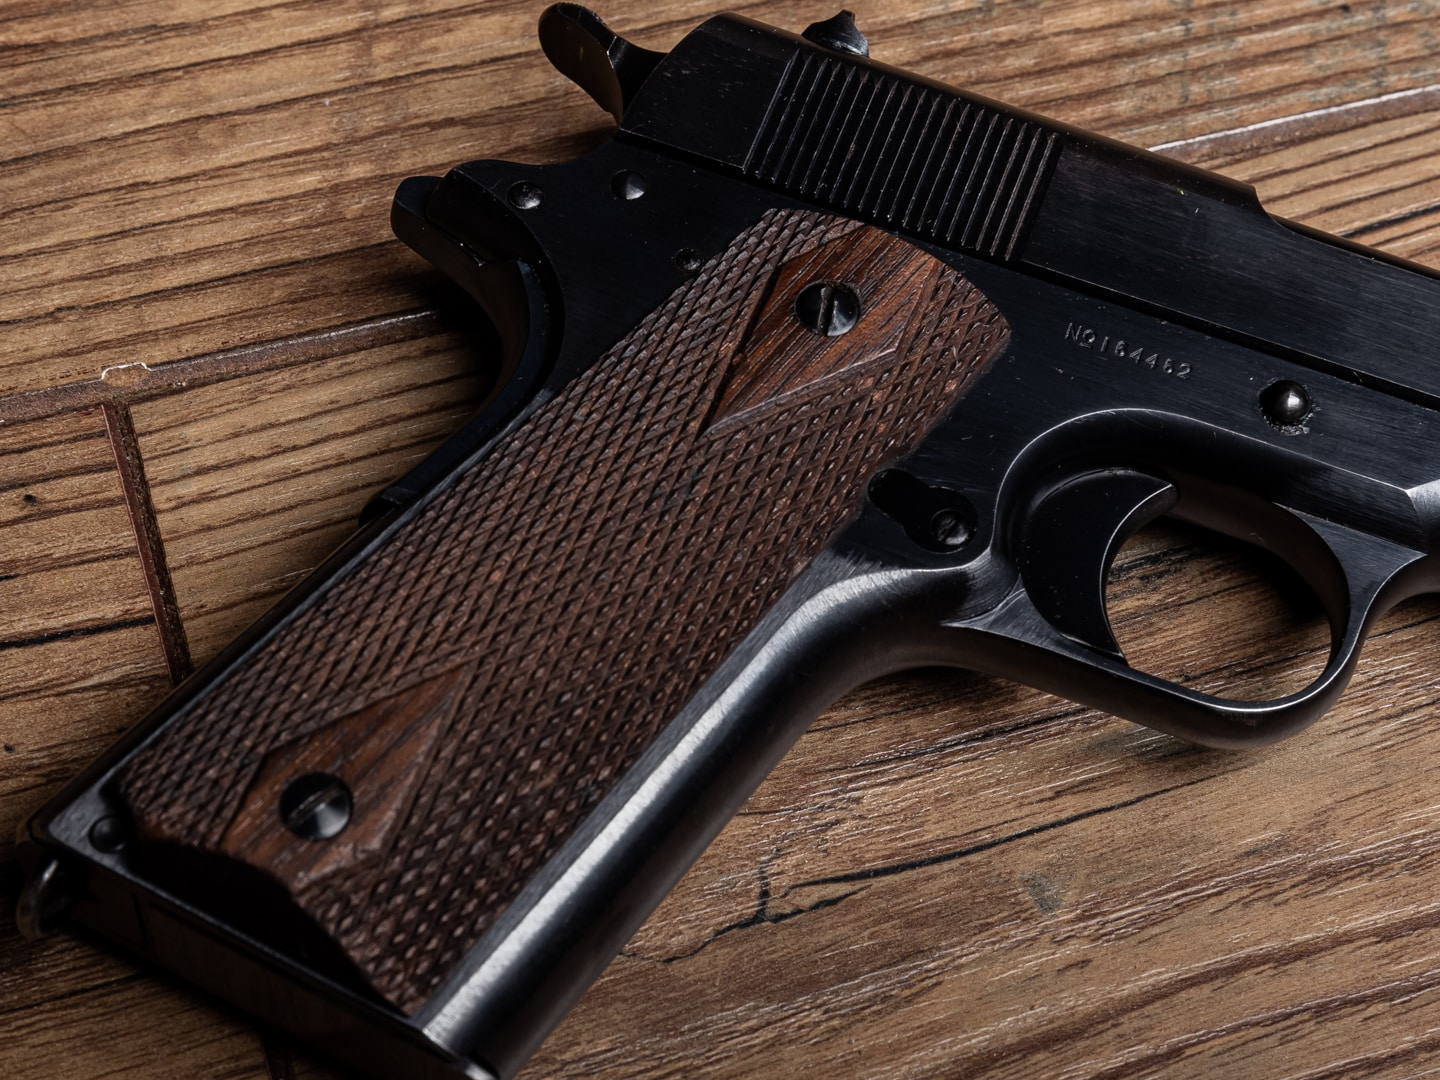 """correct pre-1926 M1911s, the gun has a smooth flat mainspring housing and """"double-diamond"""" checkered grips."""